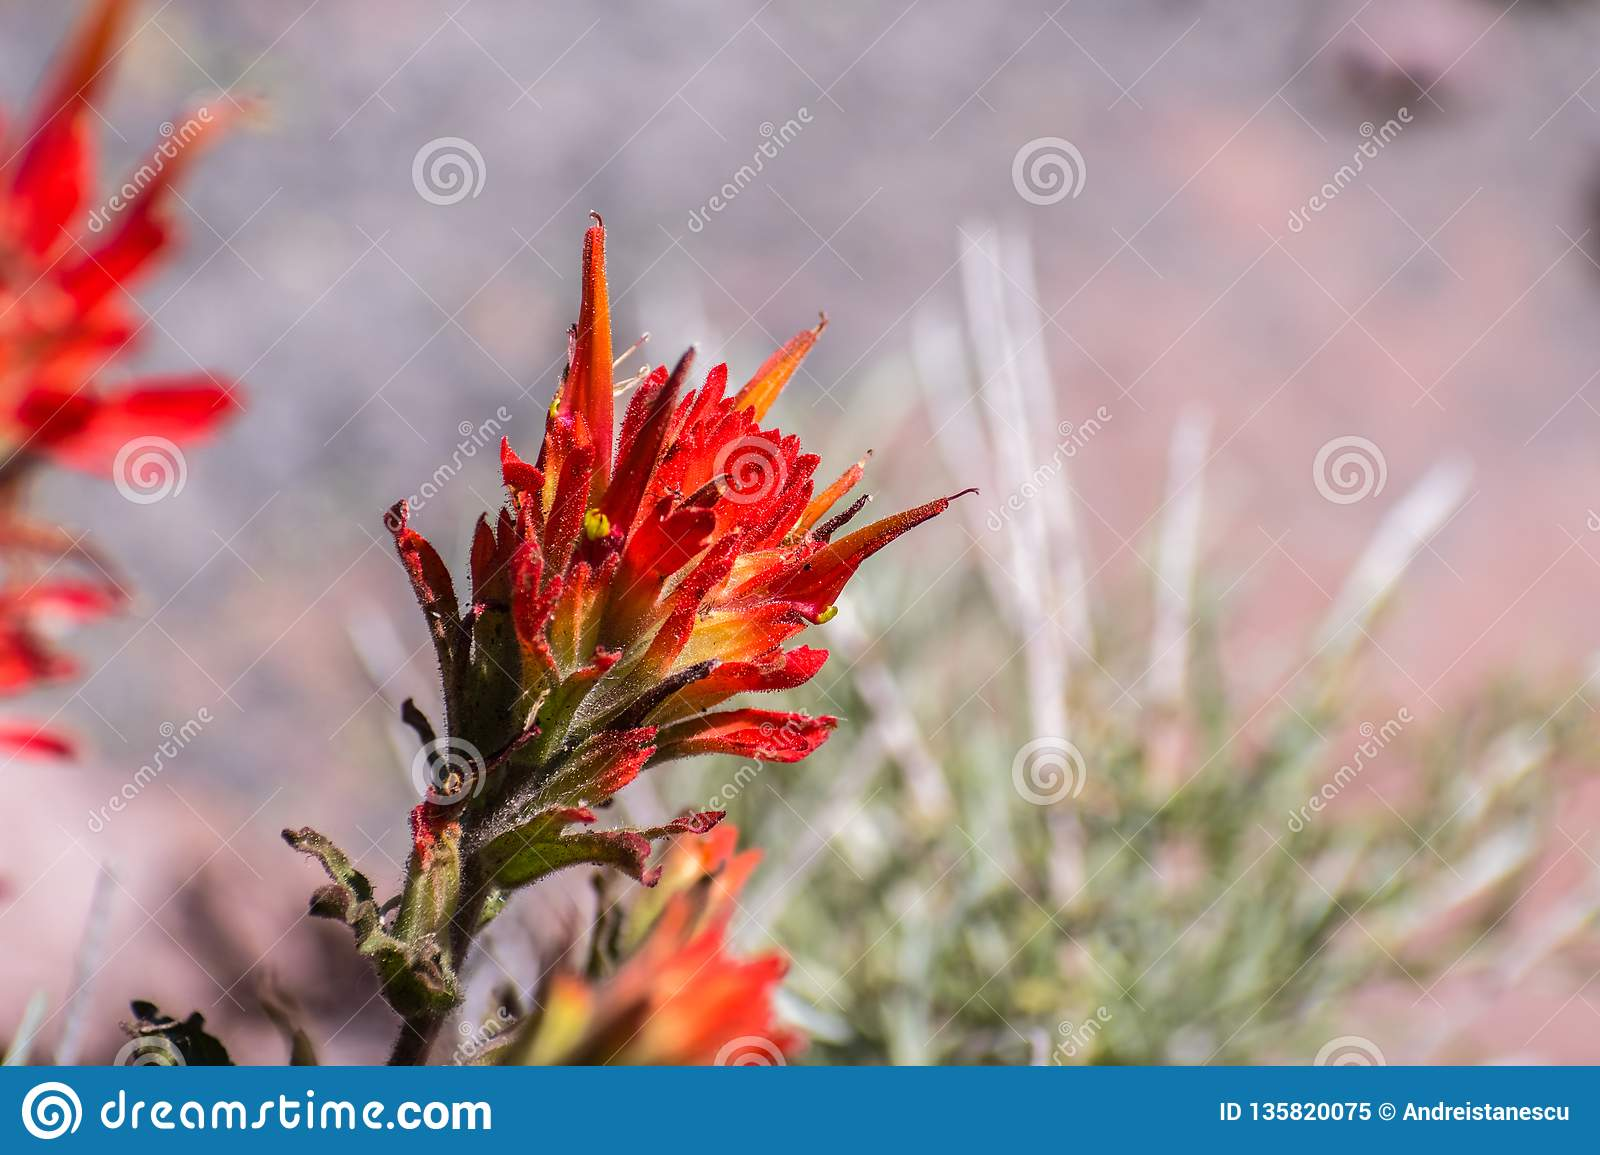 Close up of Indian paintbrush Castilleja wildflower blooming in Siskiyou County, California